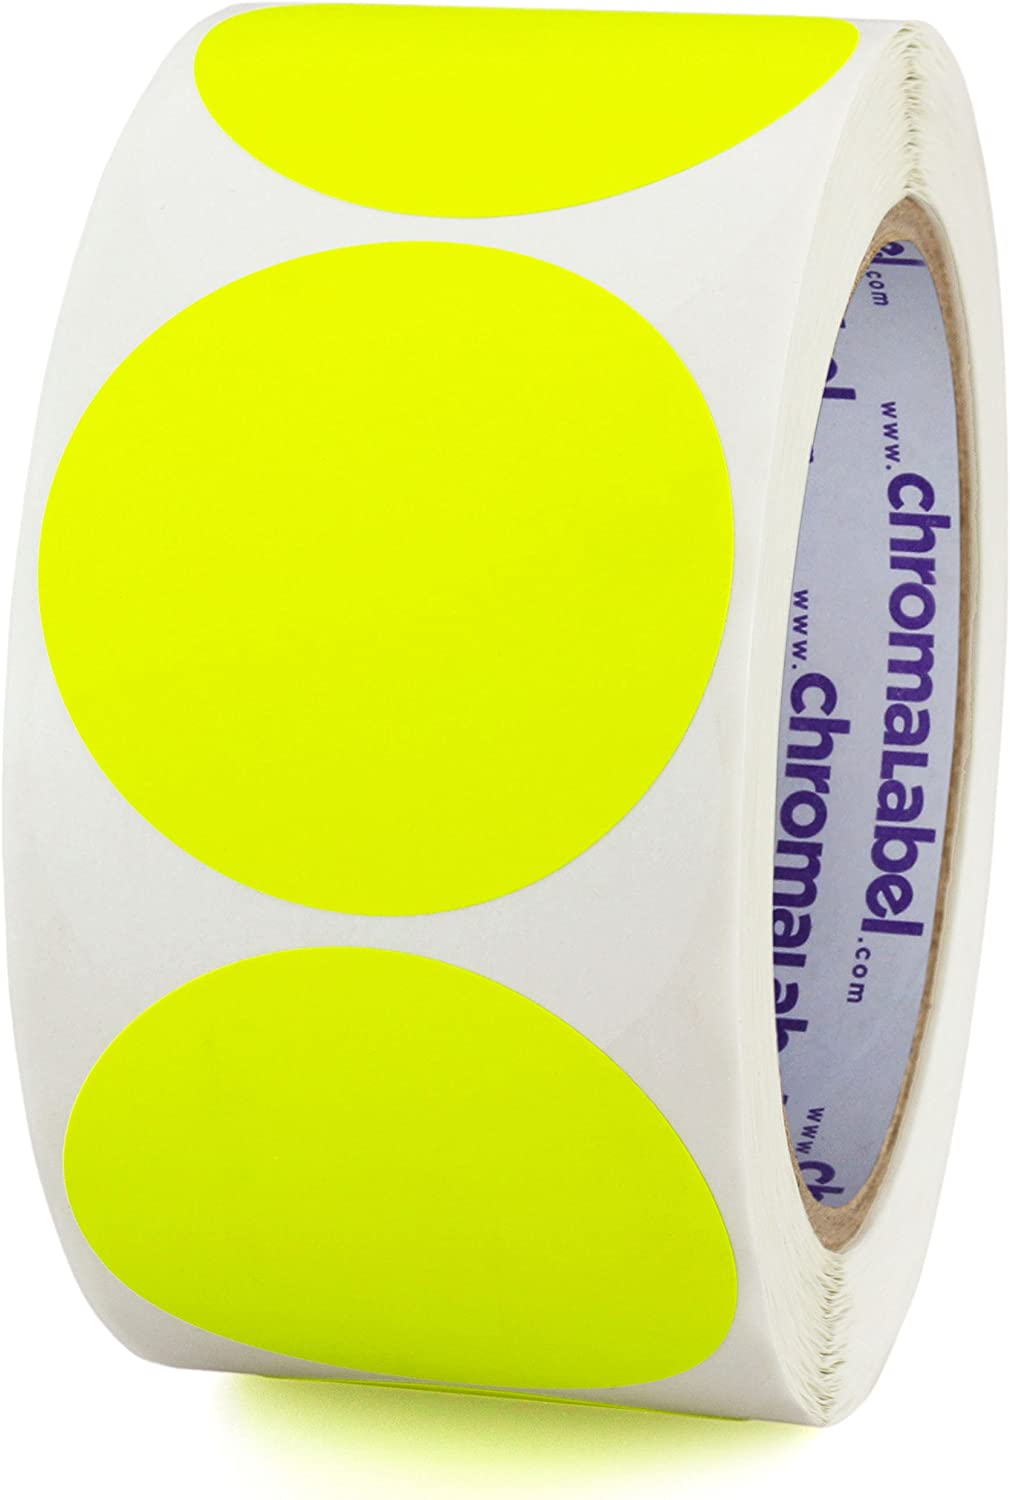 Topics on TV ChromaLabel 2 Inch Round Permanent Color-Code Stickers 500 Dot Popular popular